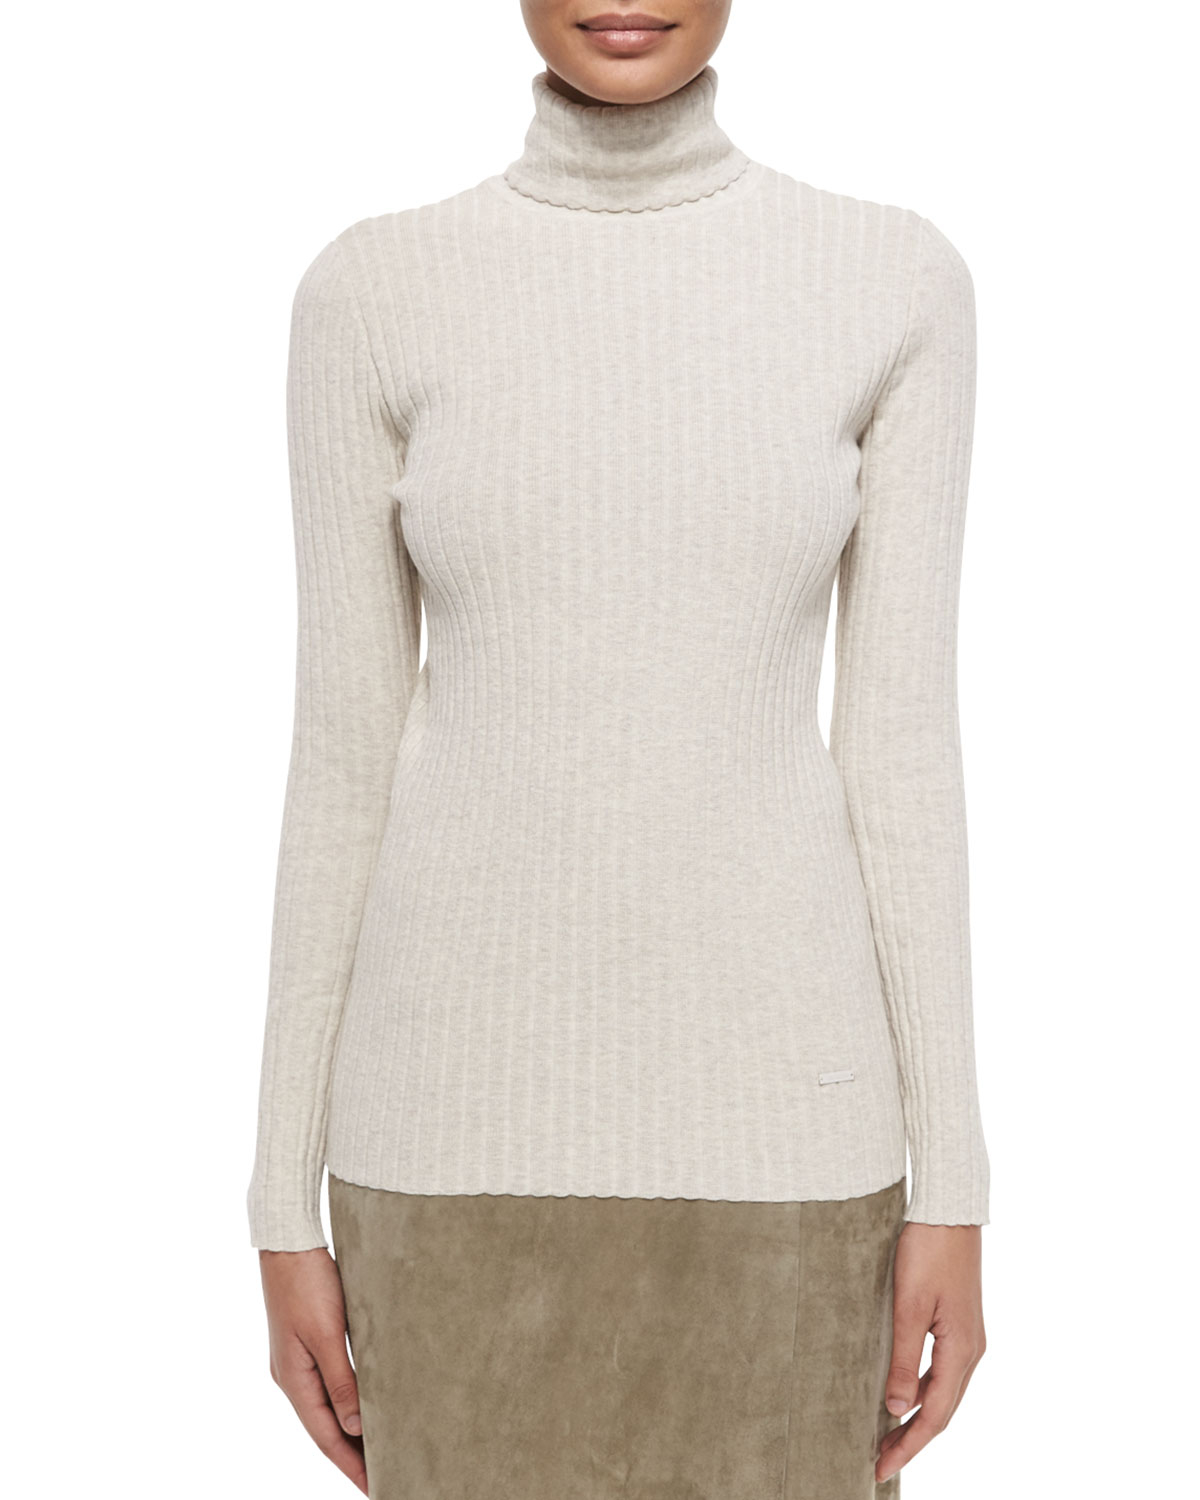 Tory burch Ribbed Turtleneck Sweater in Brown | Lyst